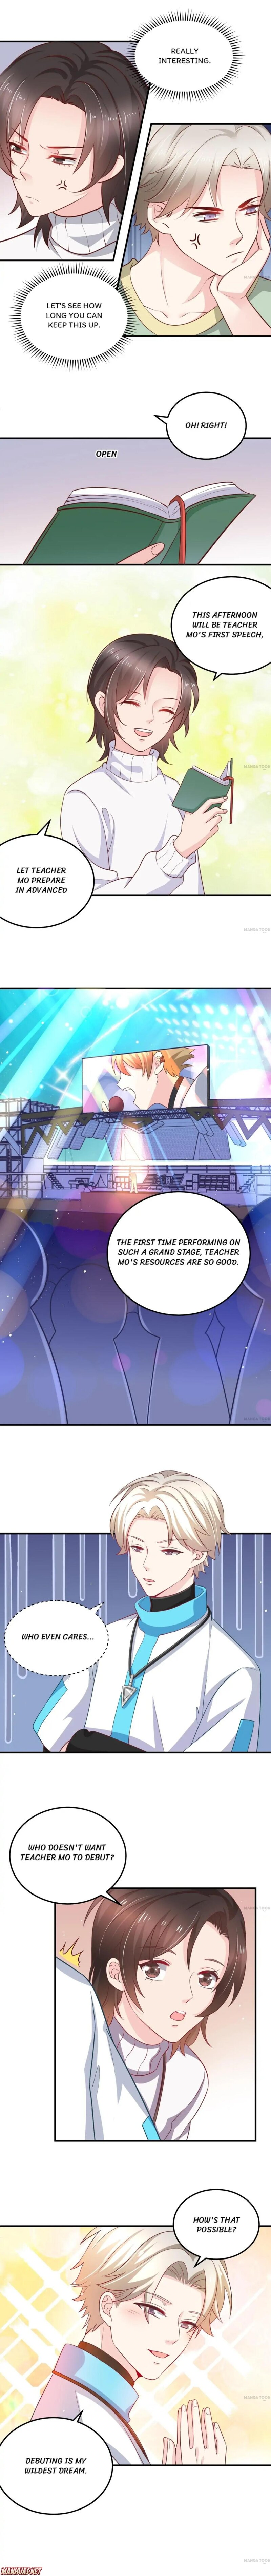 Ceo'S Handsome Trainee - chapter 15 - #2